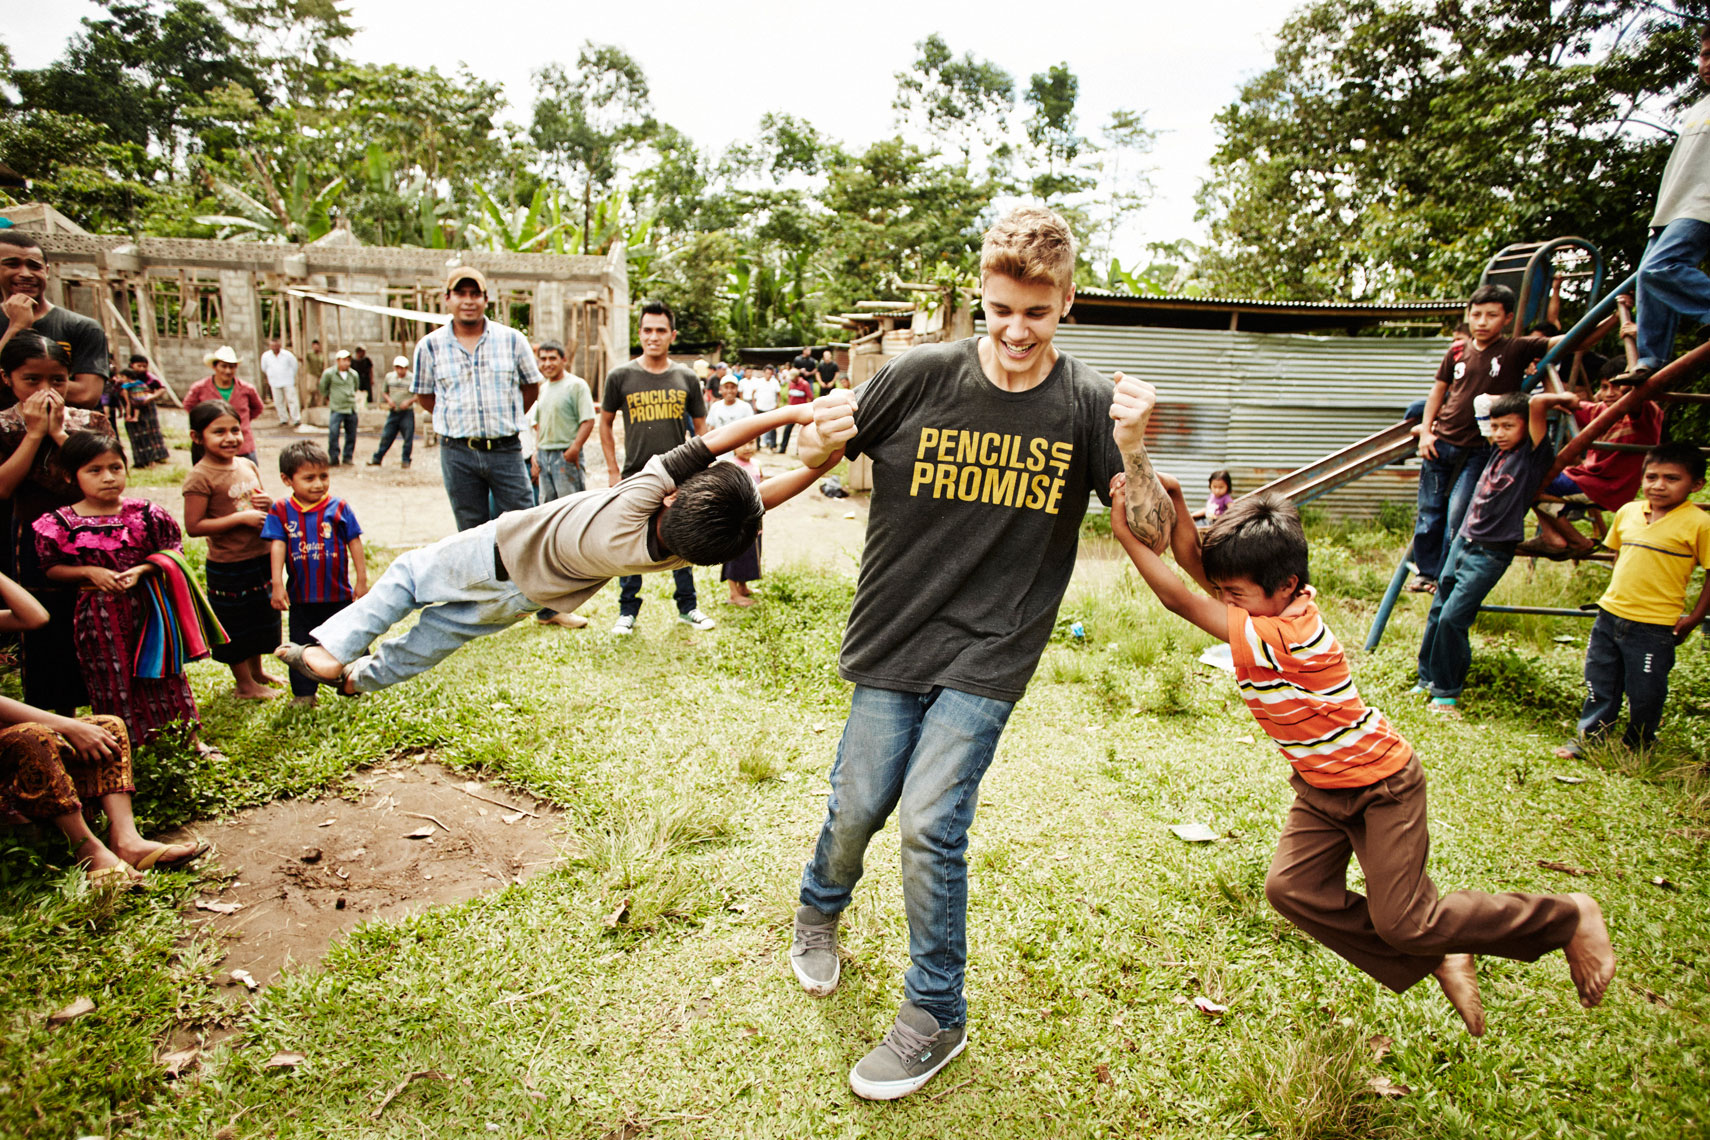 Justin Bieber, Pencils of Promise